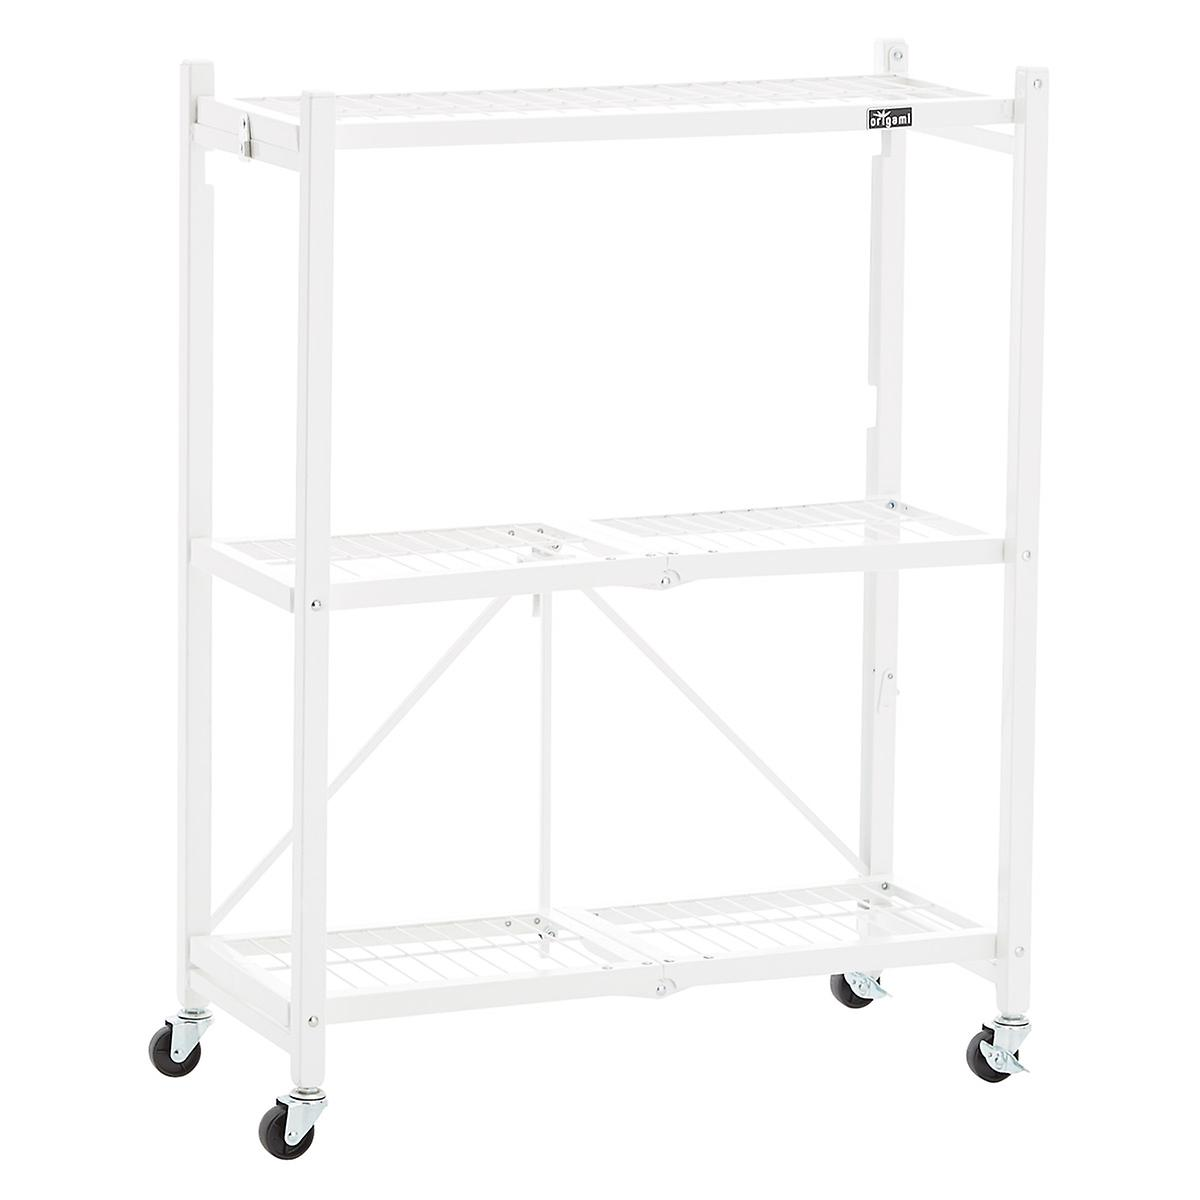 Origami 3 shelf folding rack the container store origami 3 shelf folding rack jeuxipadfo Images